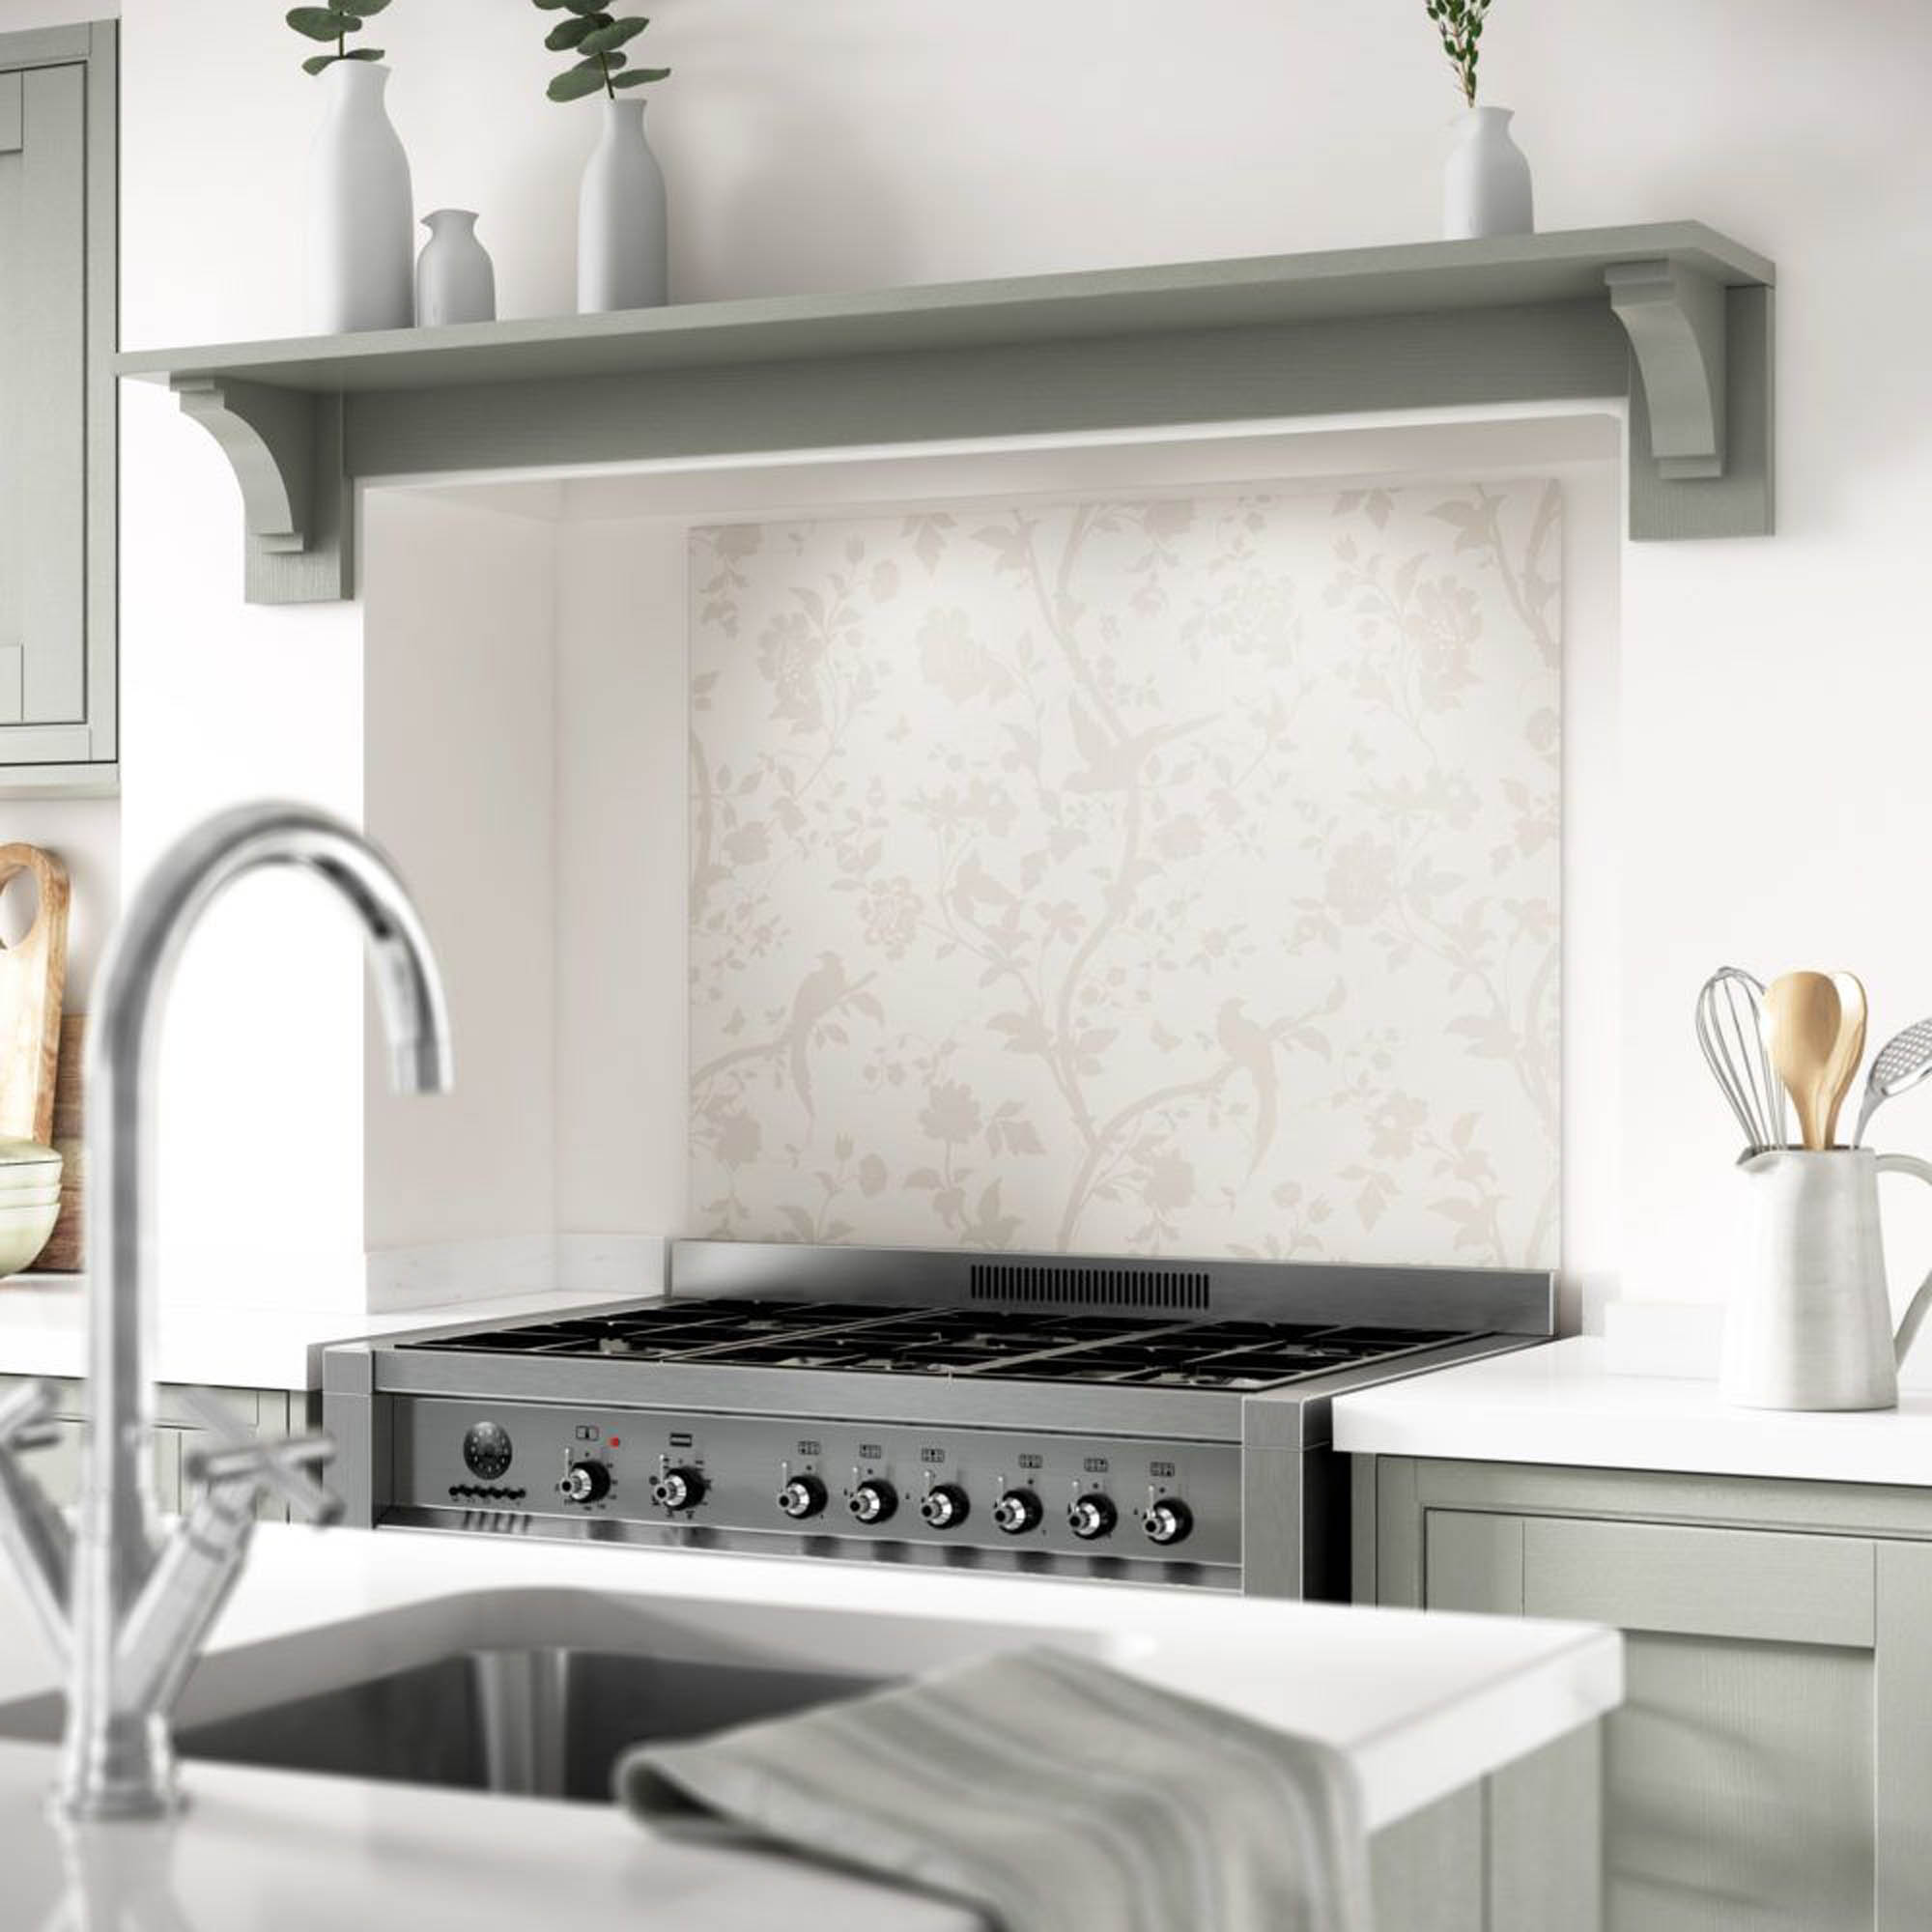 A soft flora and fauna motif on a Laura Ashley splashback